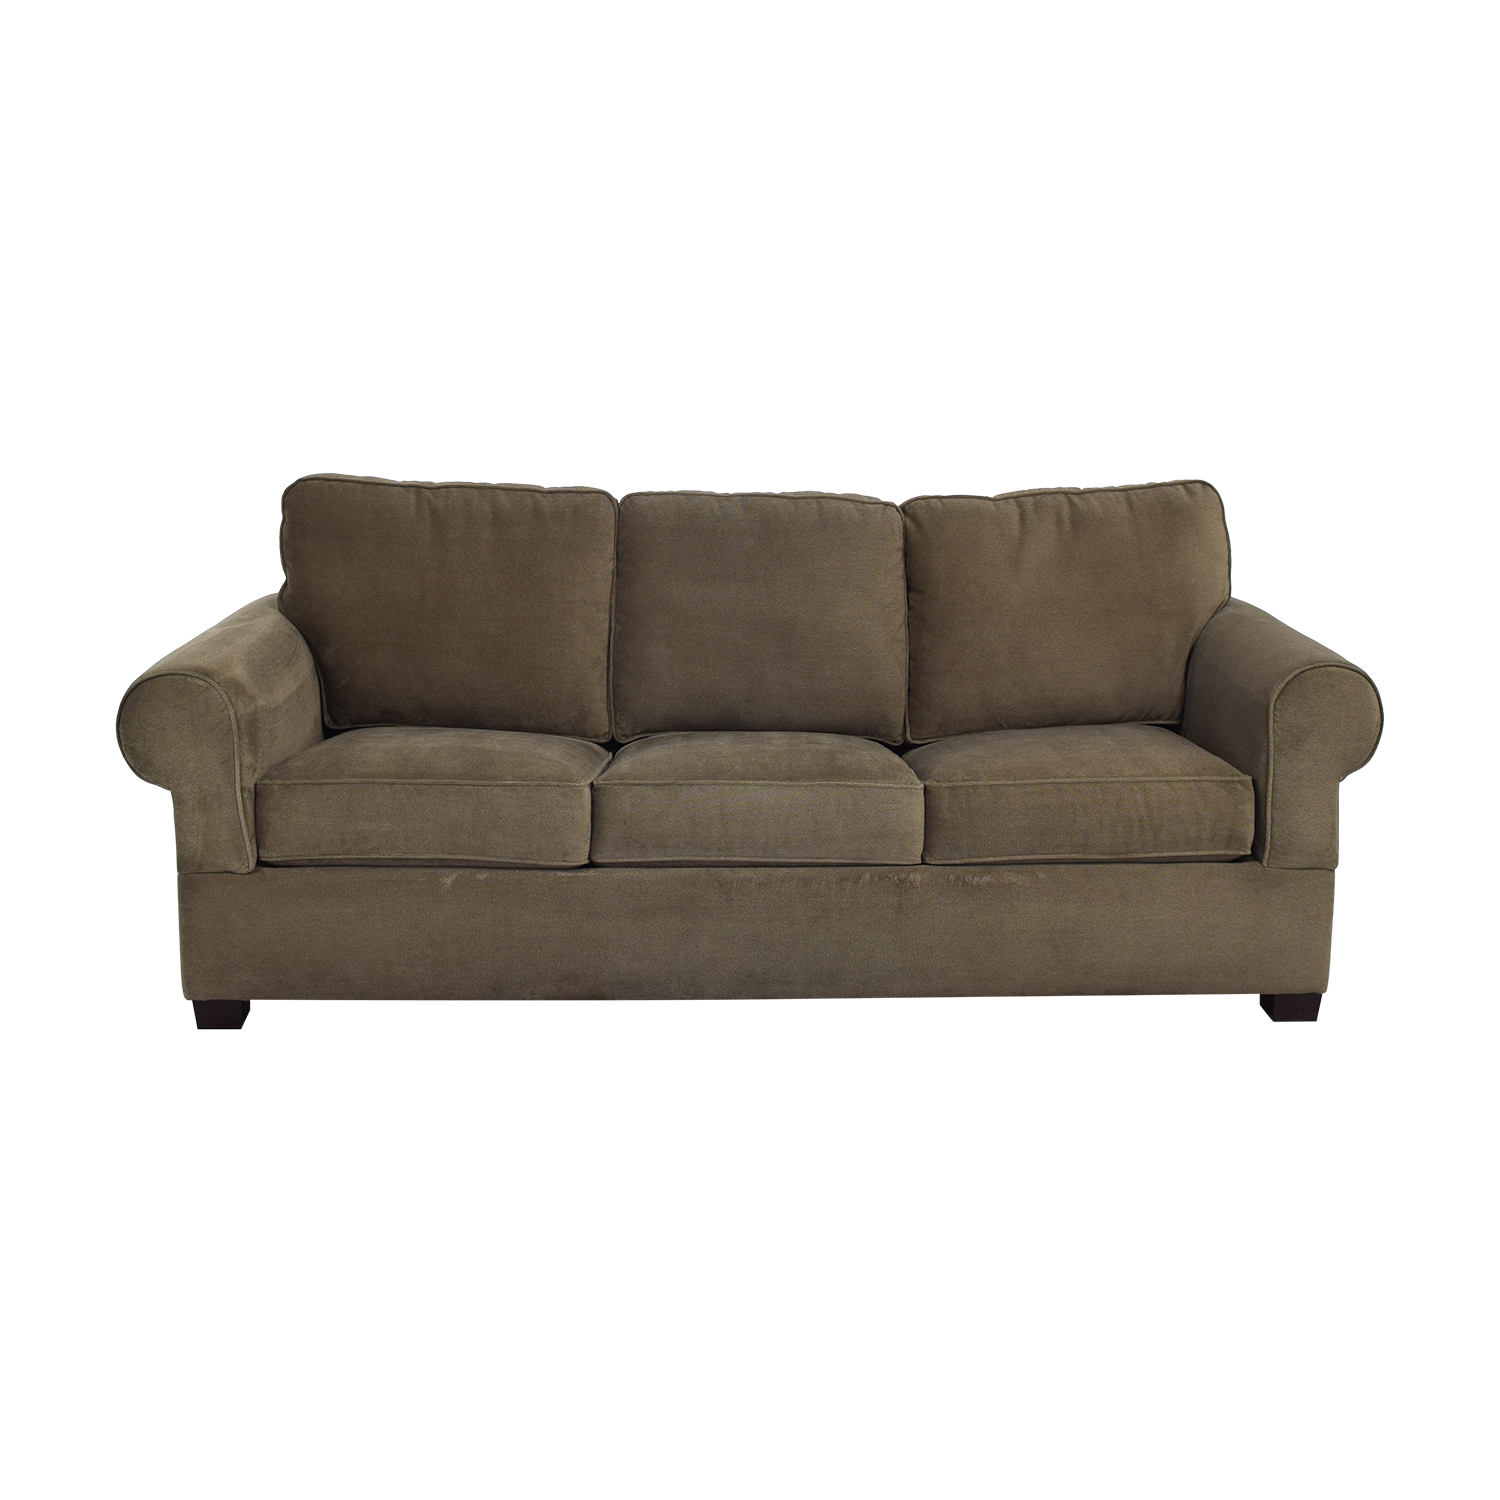 Three Cushion Queen Sofa Bed brown